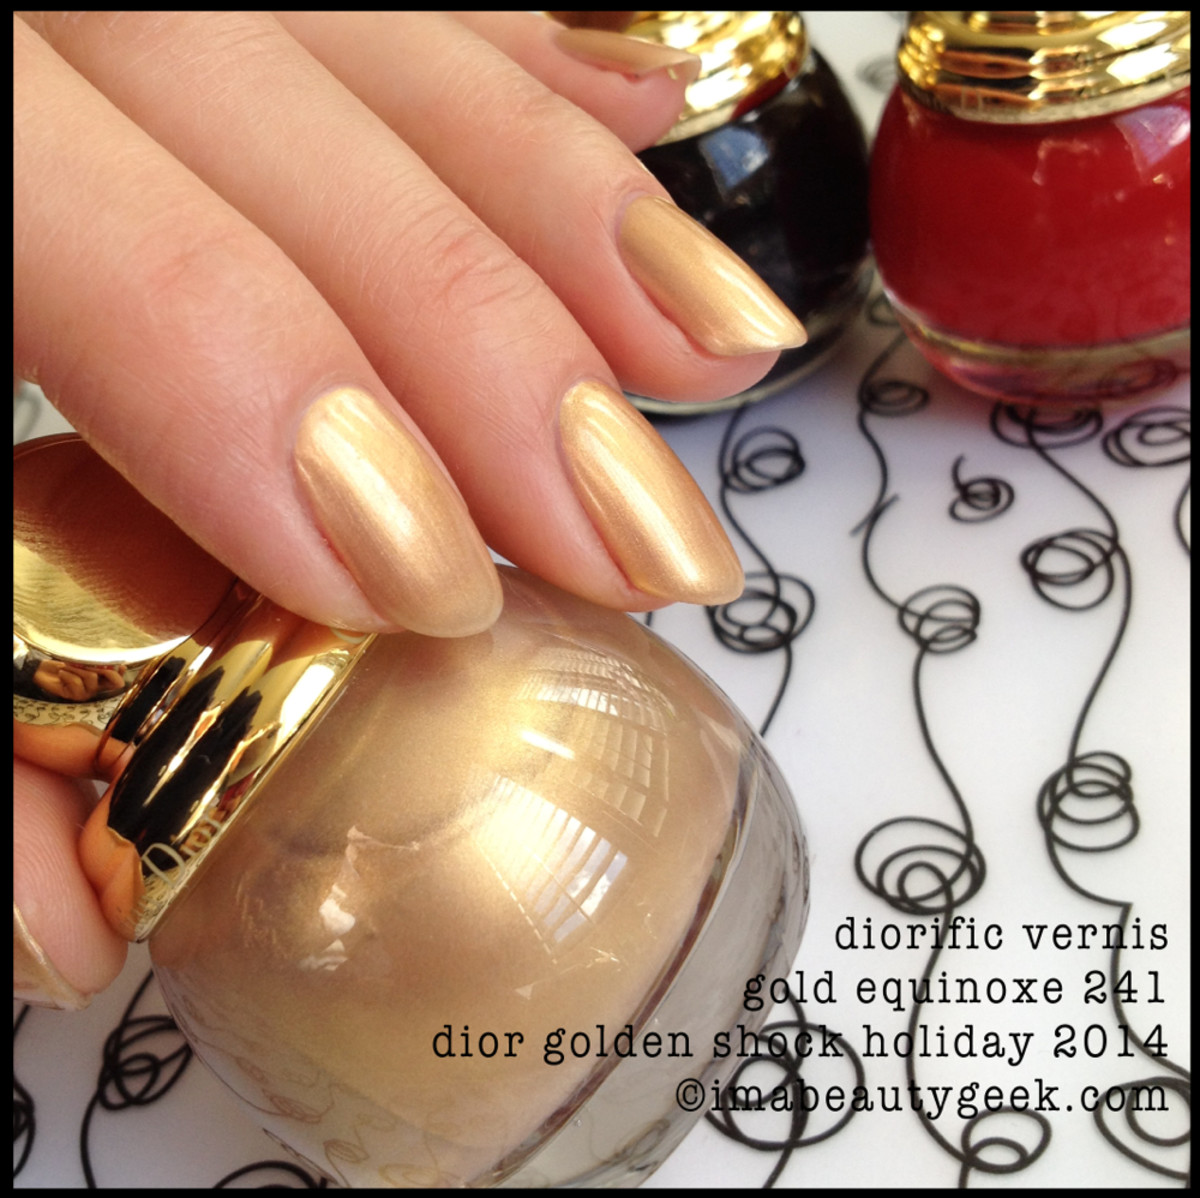 Dior Golden Shock Vernis Gold Equinoxe 241 Holiday 2014